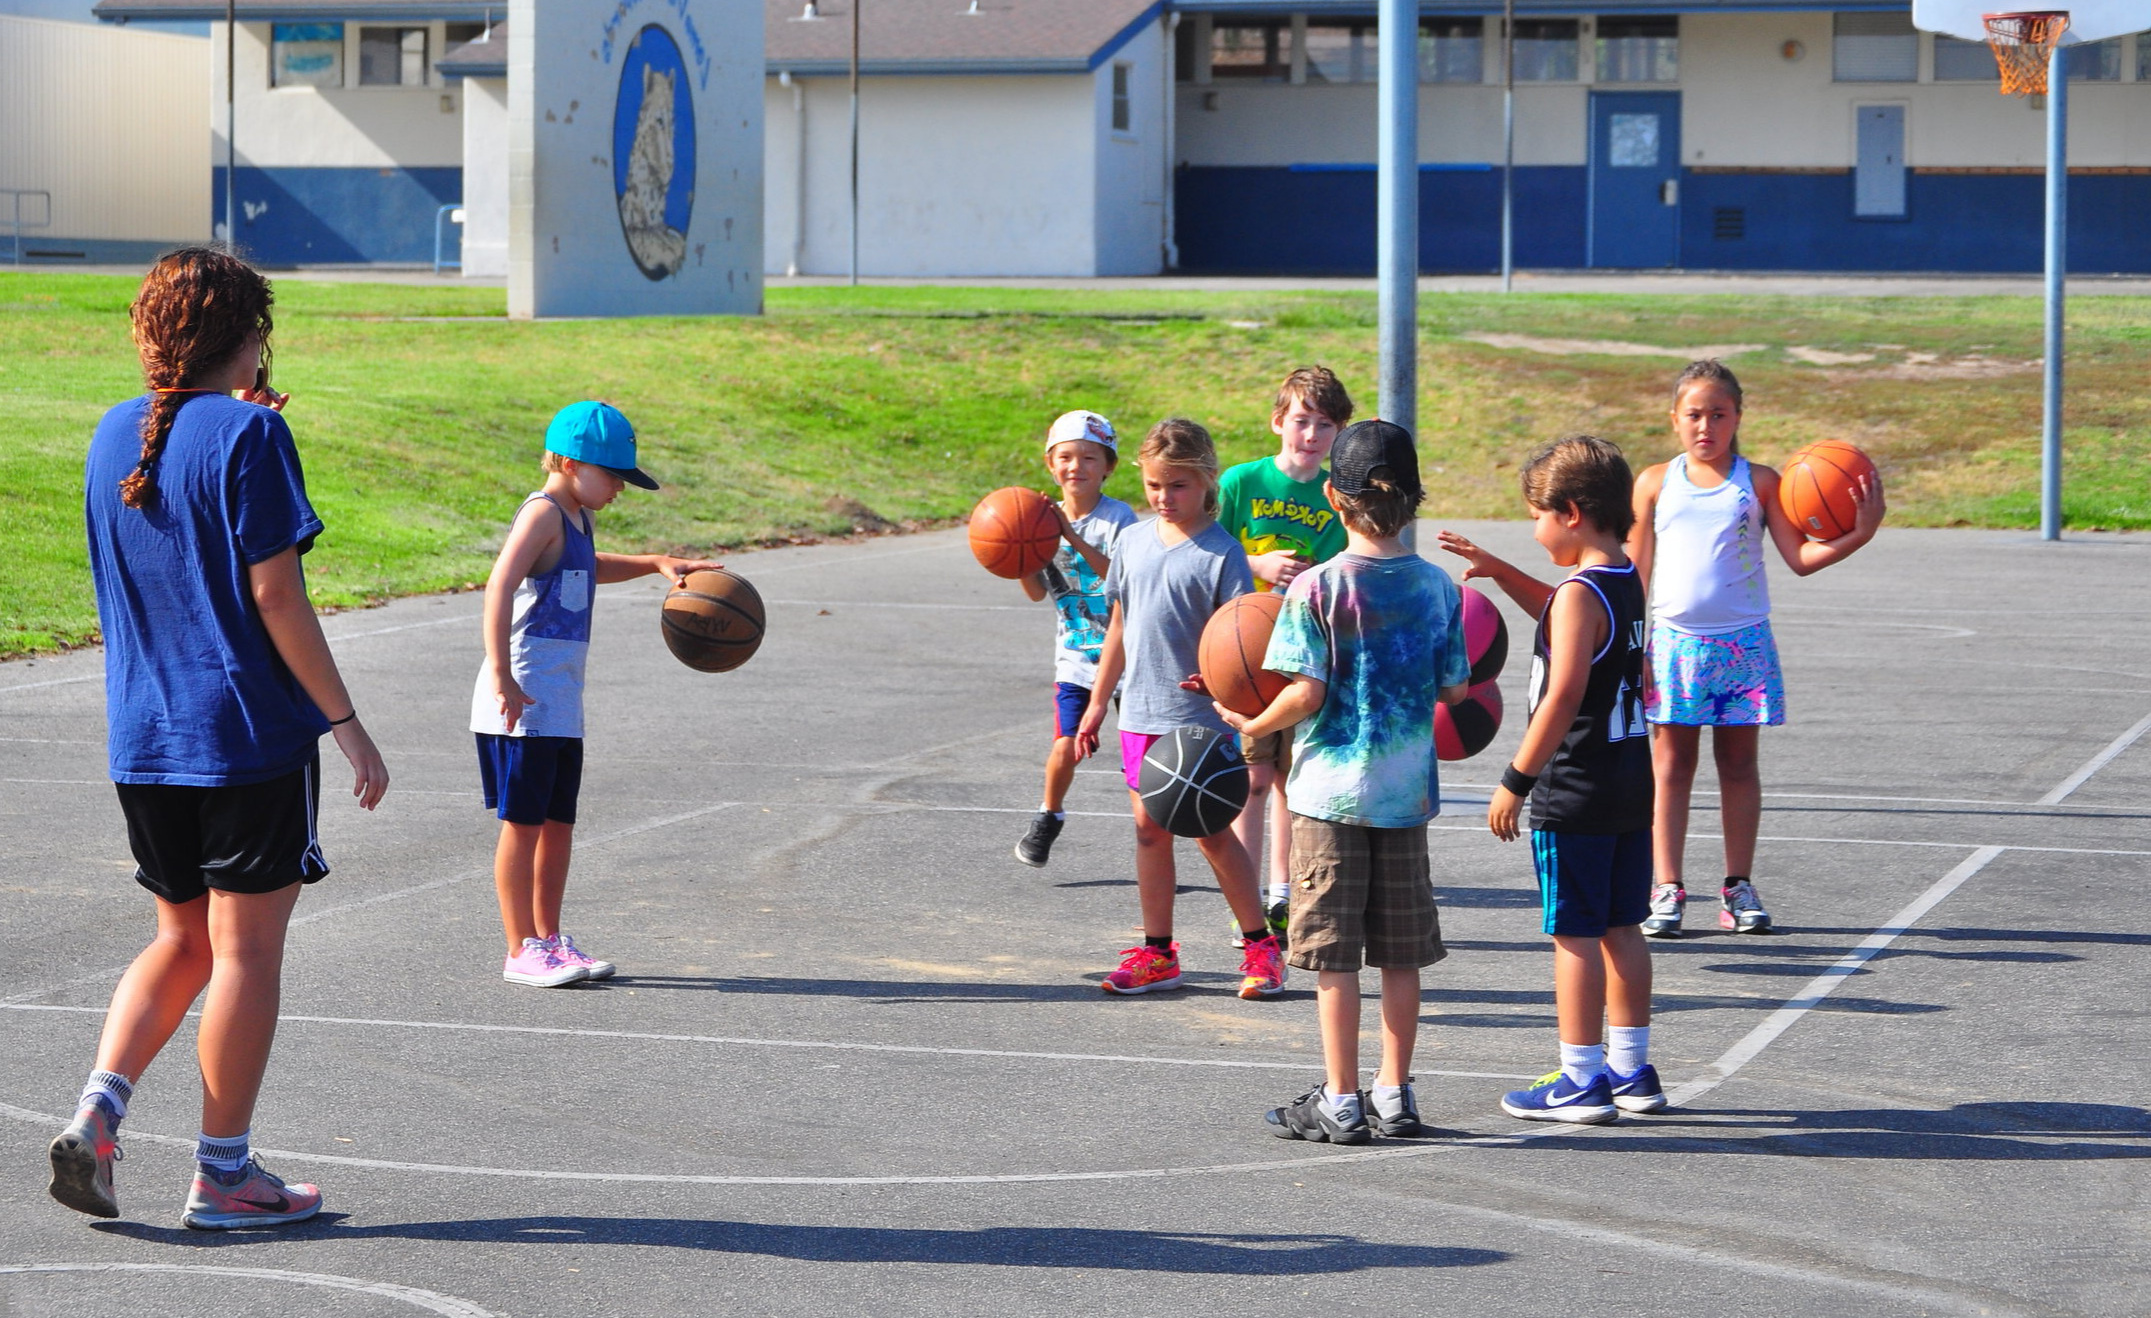 Ventura Plays Scholarships - Increasing access for our youth to participate in recreation programs including sports, arts and culture in Ventura.